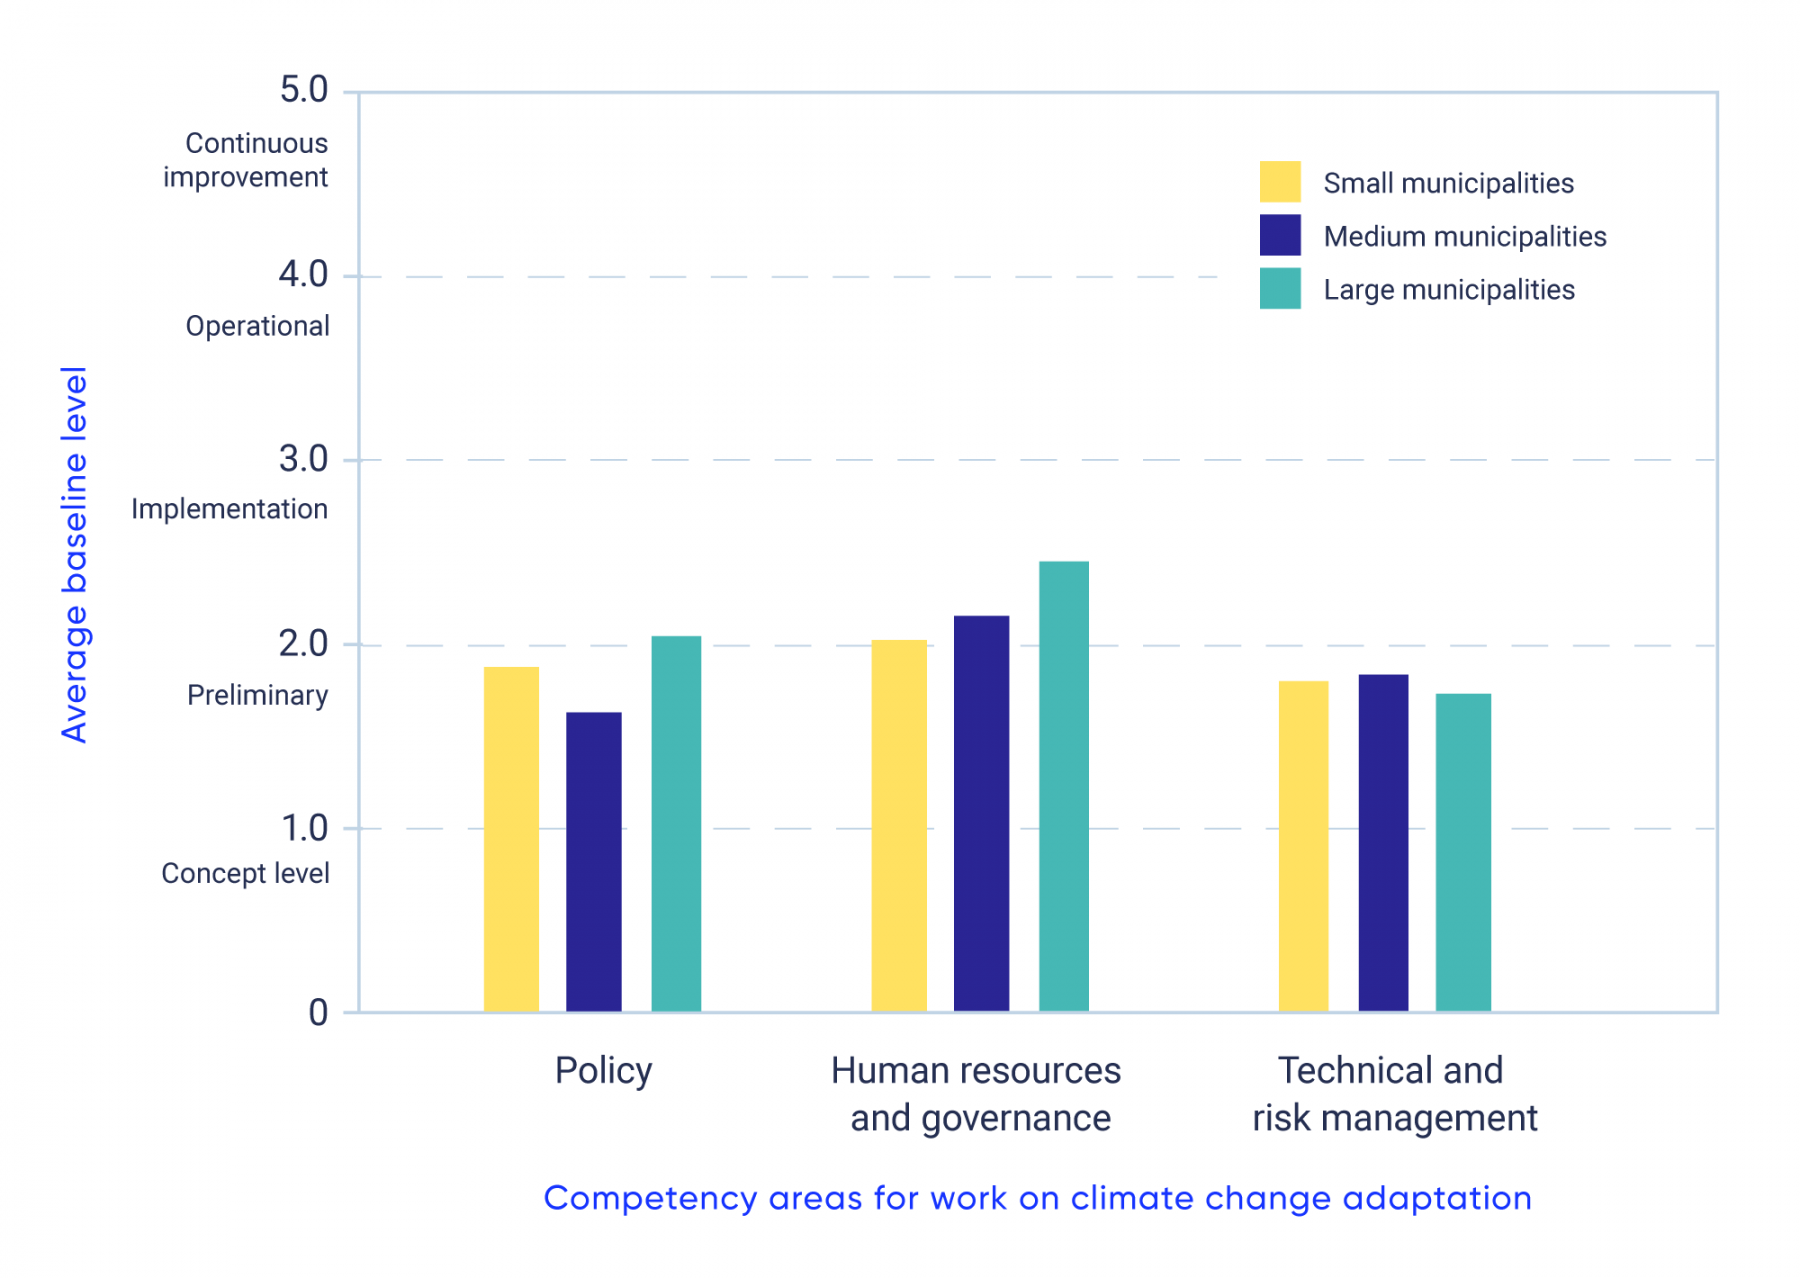 Graphical representation of baseline self-assessments made using FCM's Climate Adaptation Maturity Scale provided by municipalities that received FCM-support towards local adaptation projects. The five-point scale ranges from 1.0 (concept level) to 5.0 (continuous improvement level), and includes three competency areas: policy; human resources and governance; and, technical and risk management. This bar graph shows the average self-assessment values provided by small municipalities (e.g. populations under 10,000), medium-size municipalities (e.g. populations of 10,000-100,000) and large municipalities (e.g. populations over 100,000) at the start of their adaptation projects. The bar graph shows small, medium, and large municipalities are near to or have met the preliminary baseline in all three competencies.